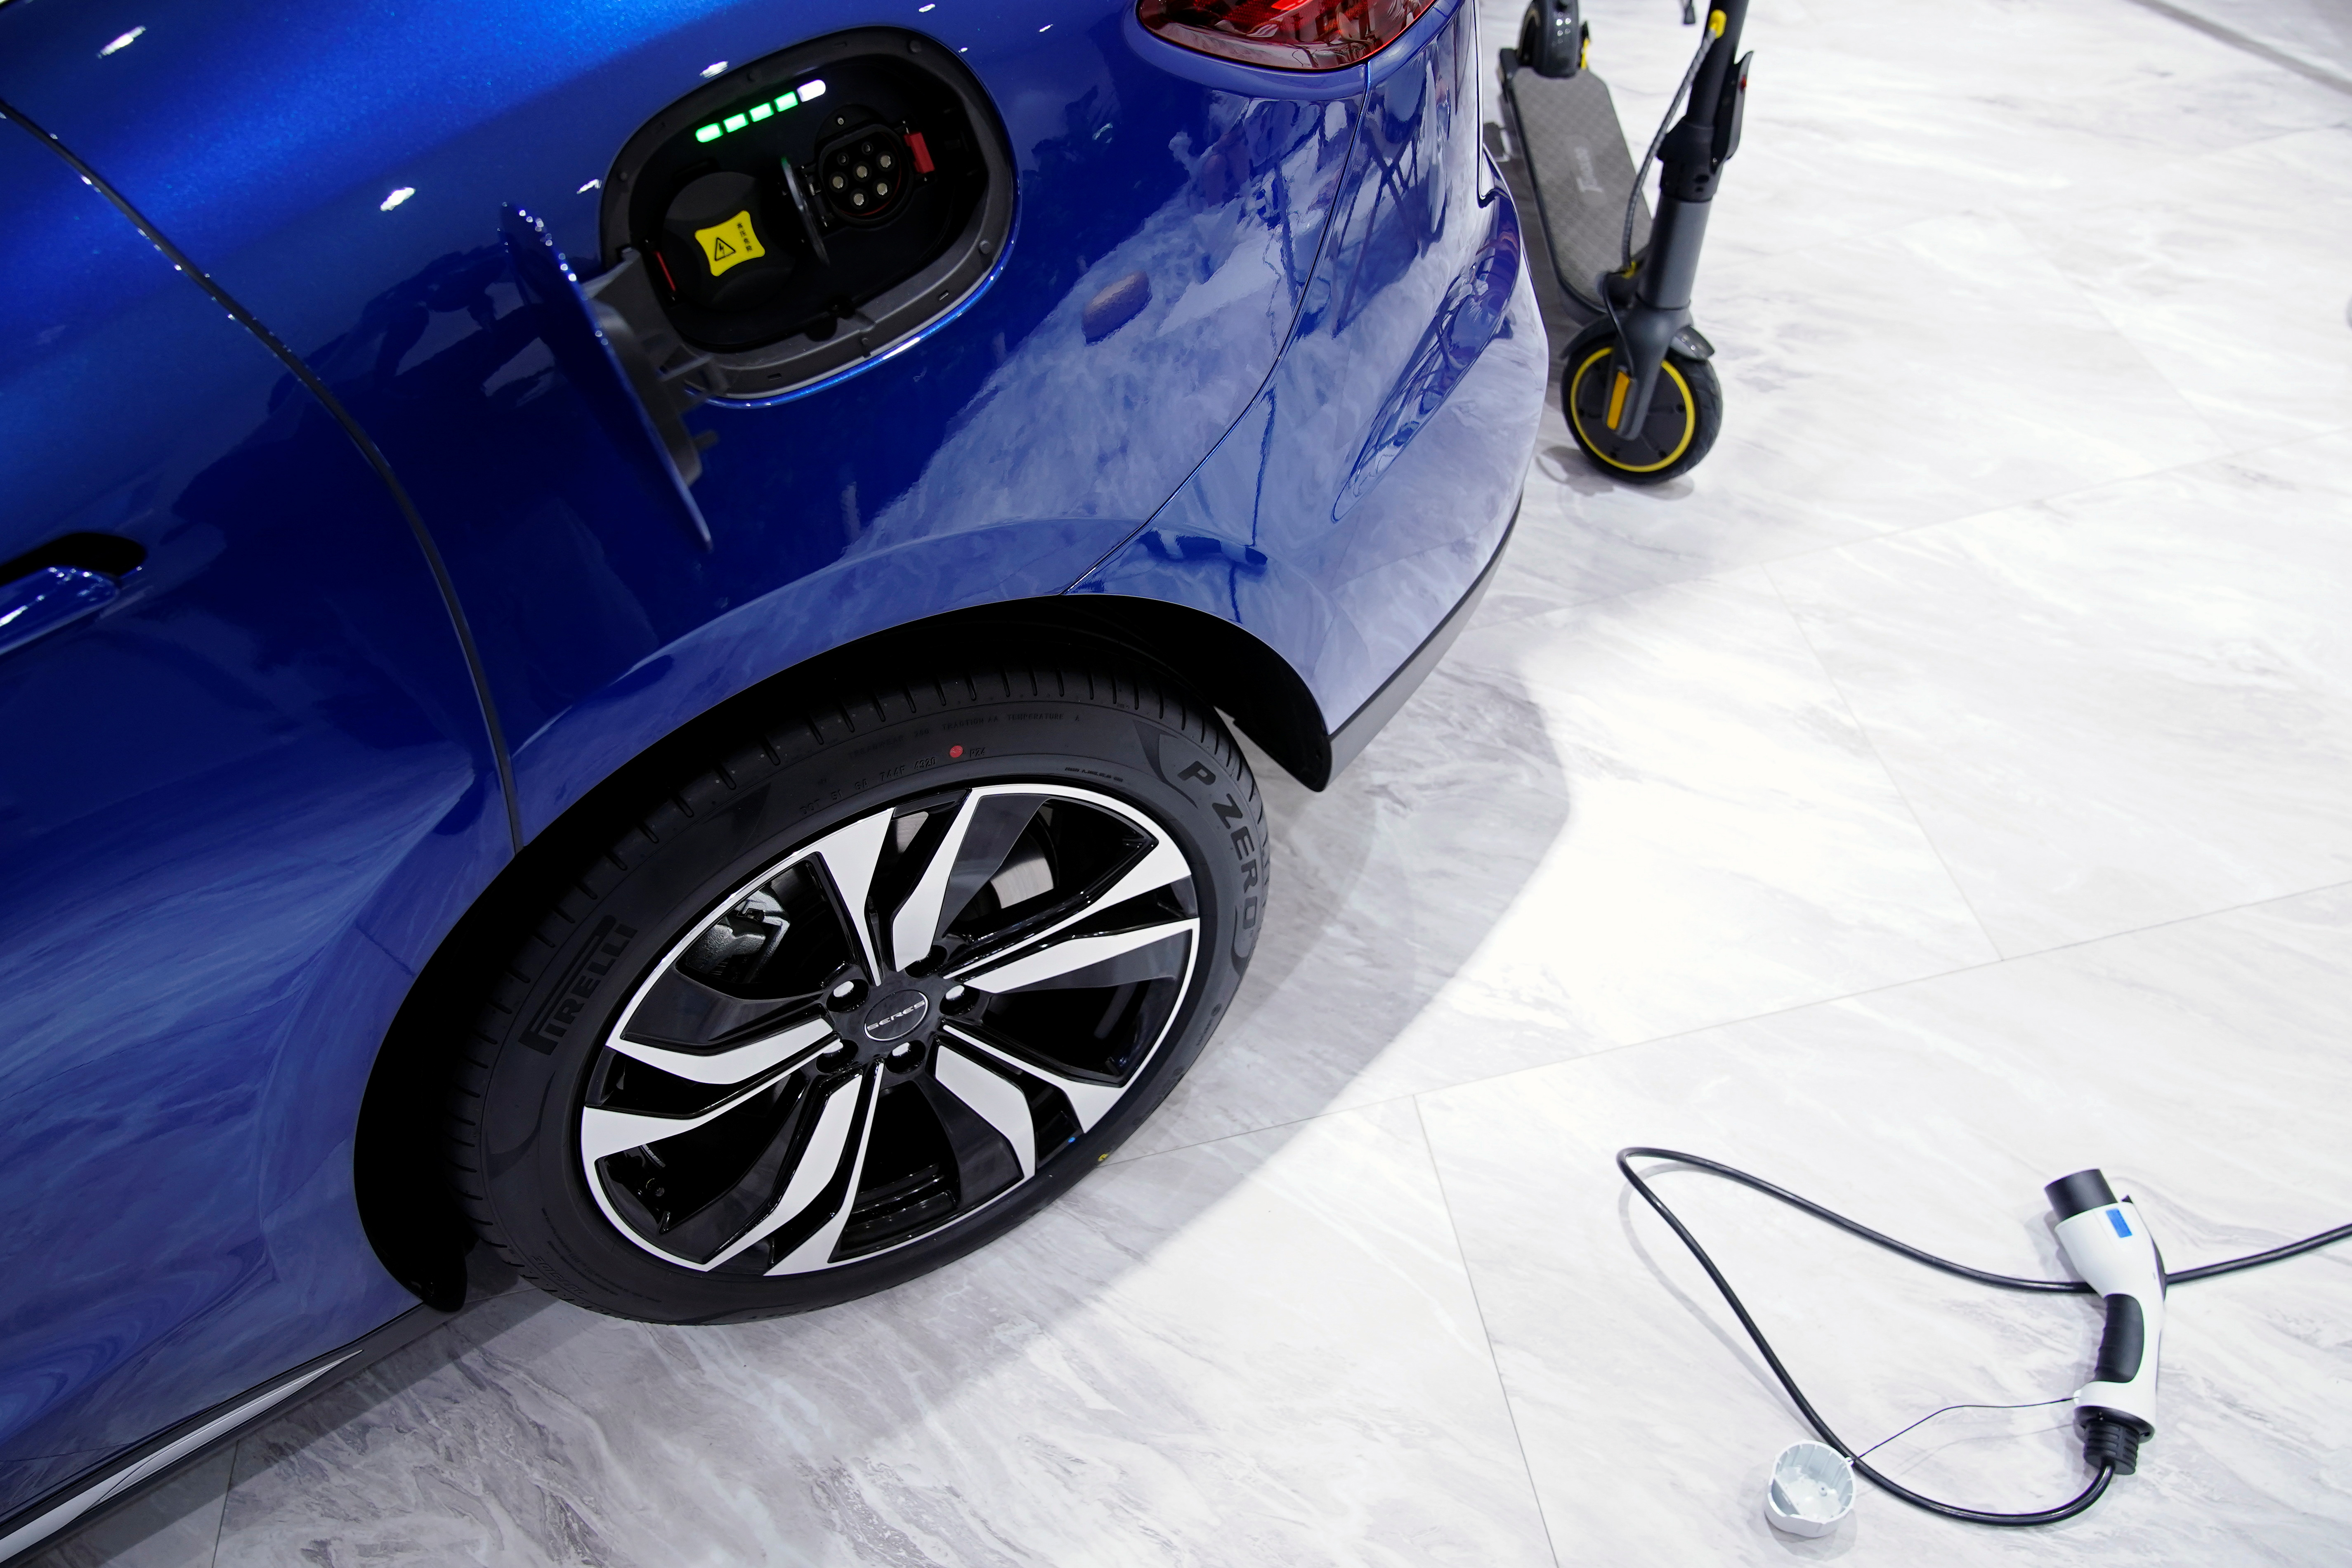 A charging cable is seen next to a Cyrus Huawei Smart Selection SF5 electric vehicle (EV) displayed during a media day for the Auto Shanghai show in Shanghai, China April 20, 2021. REUTERS/Aly Song